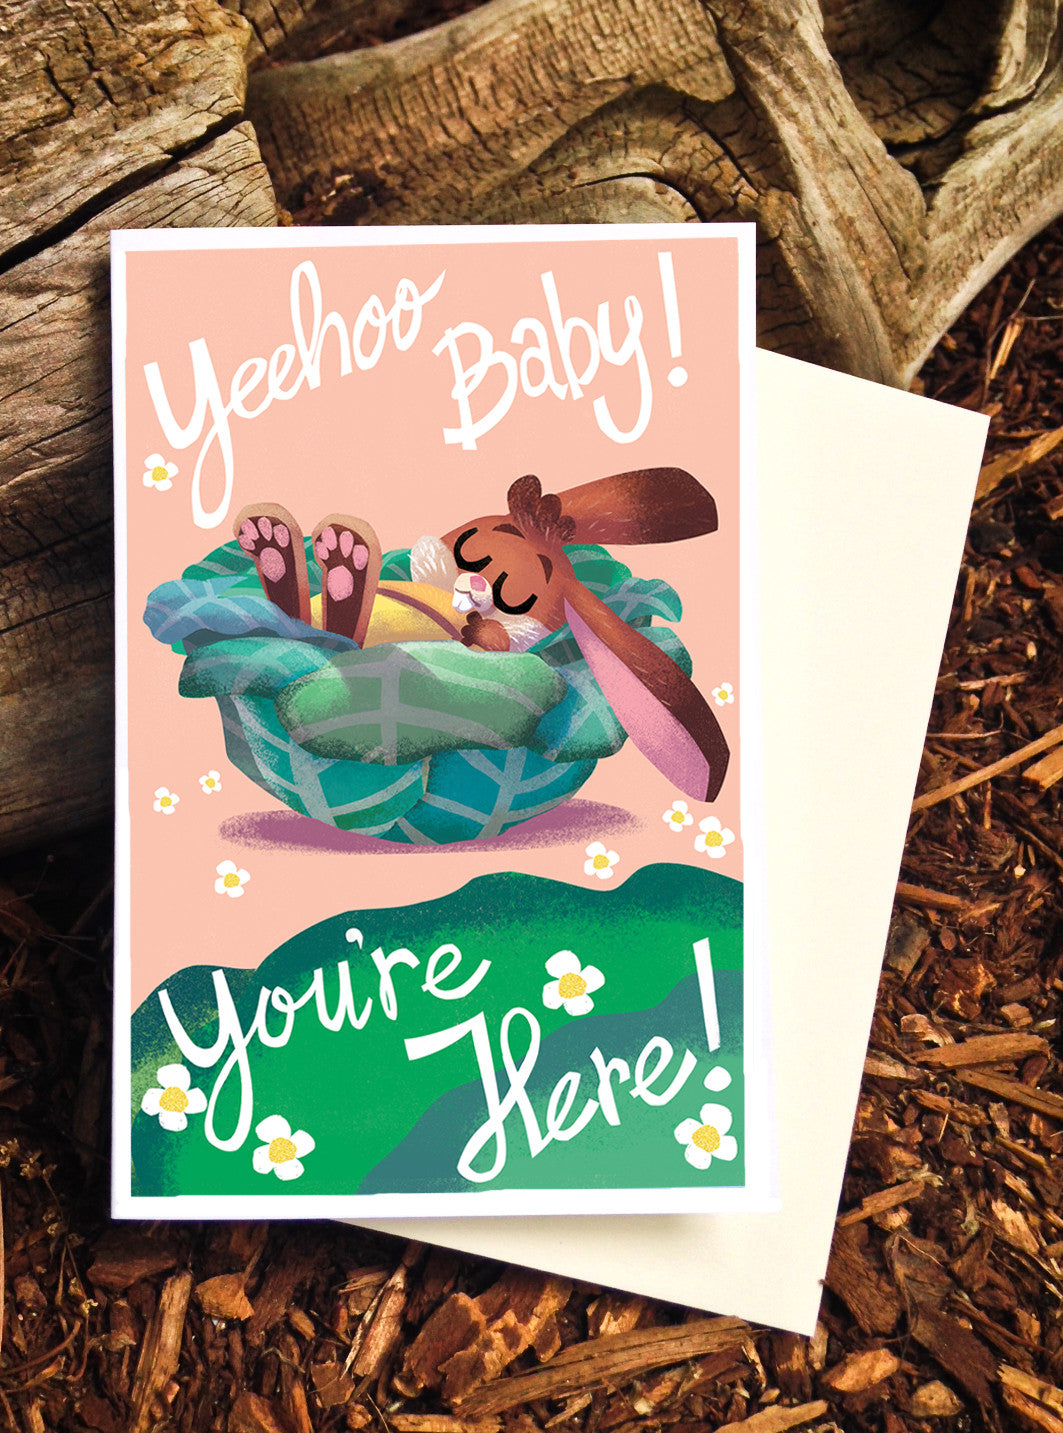 Yeehoo baby, you're here! Bunny - Card